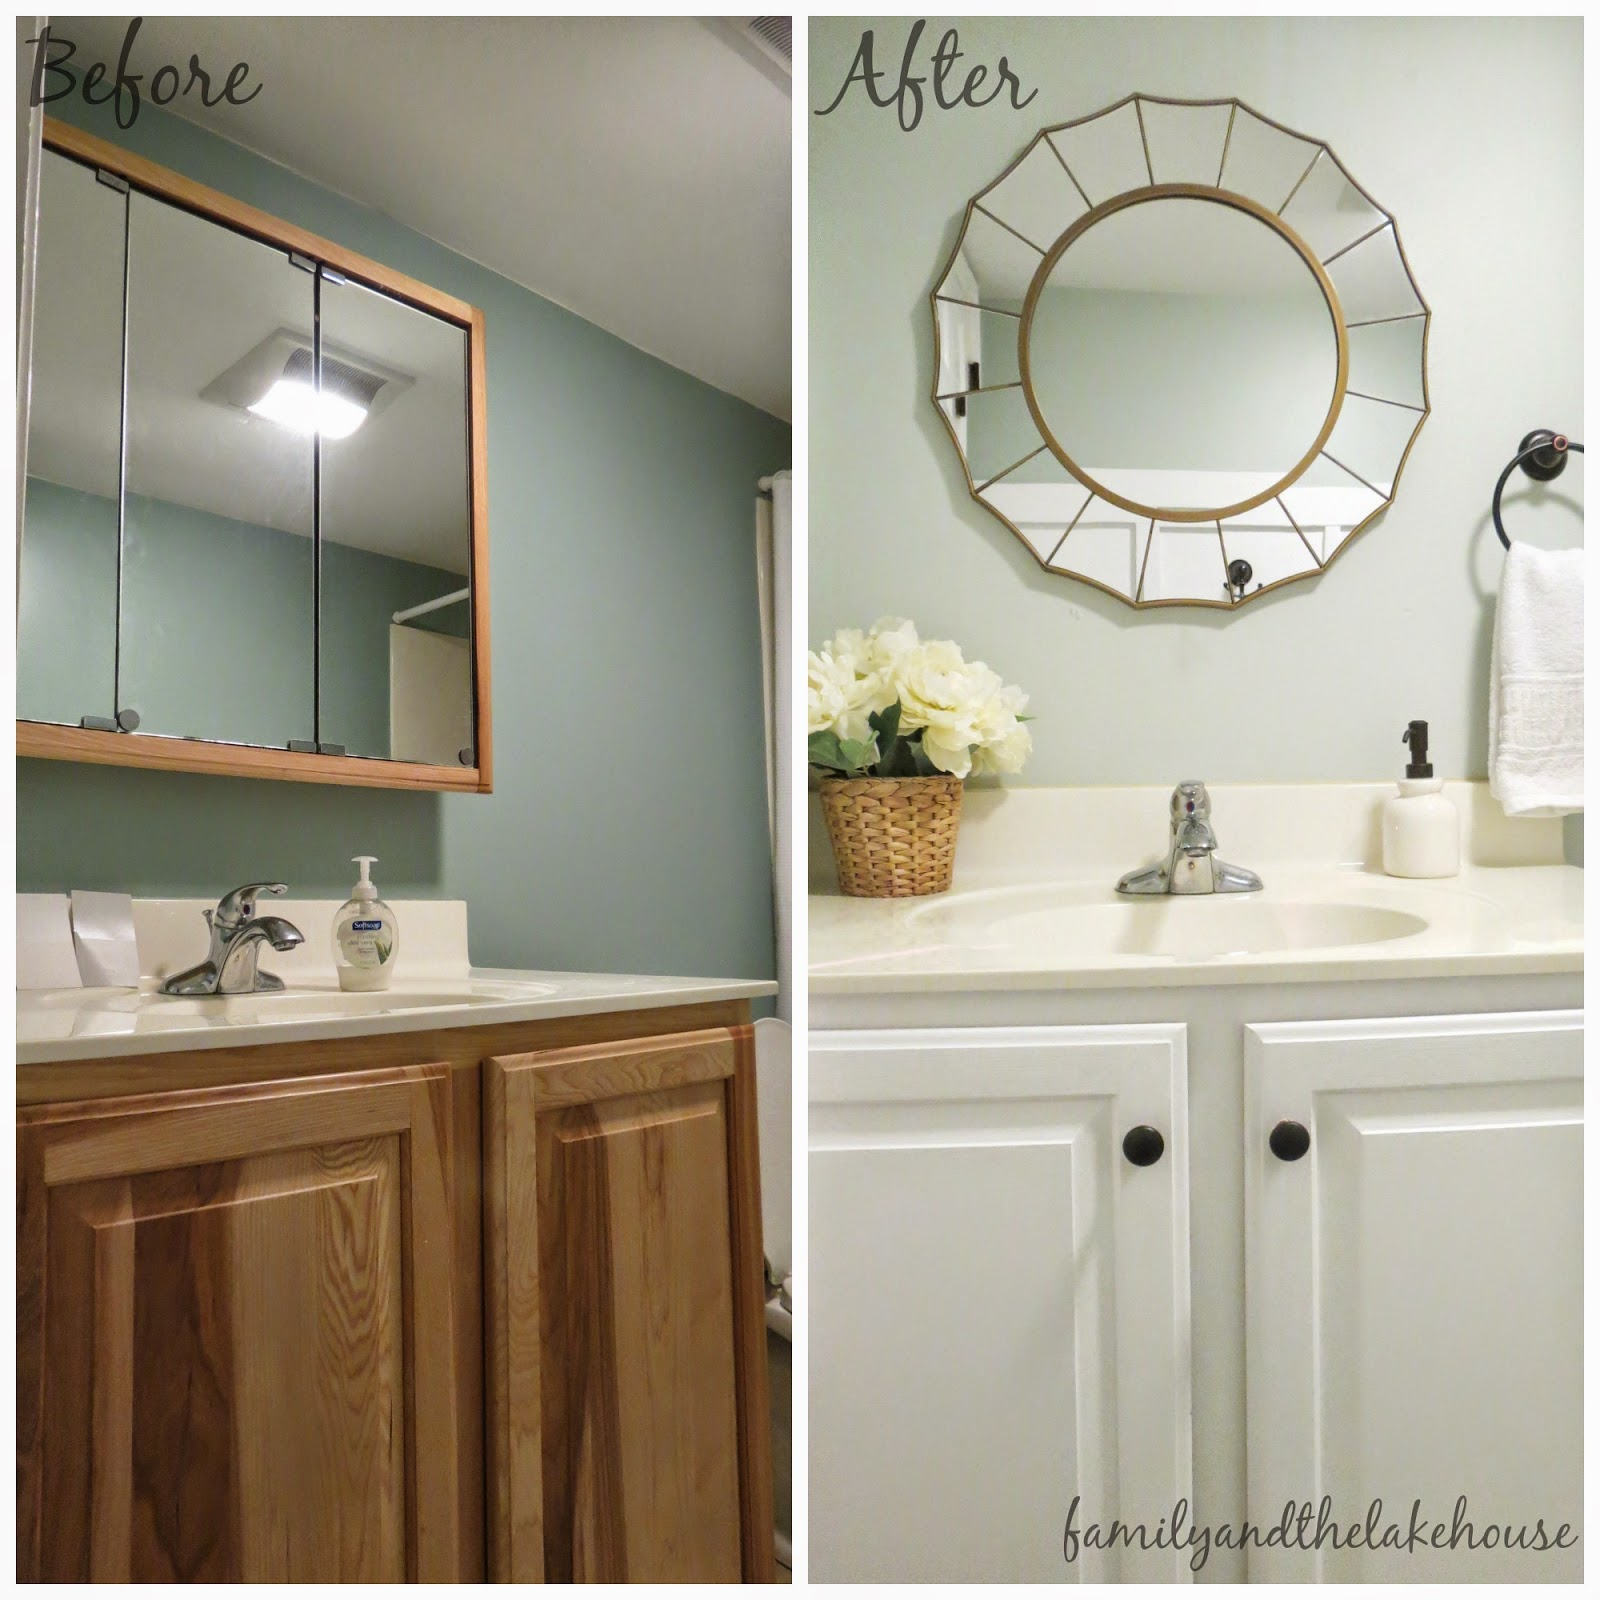 Over At Marie's: Guest Bathroom